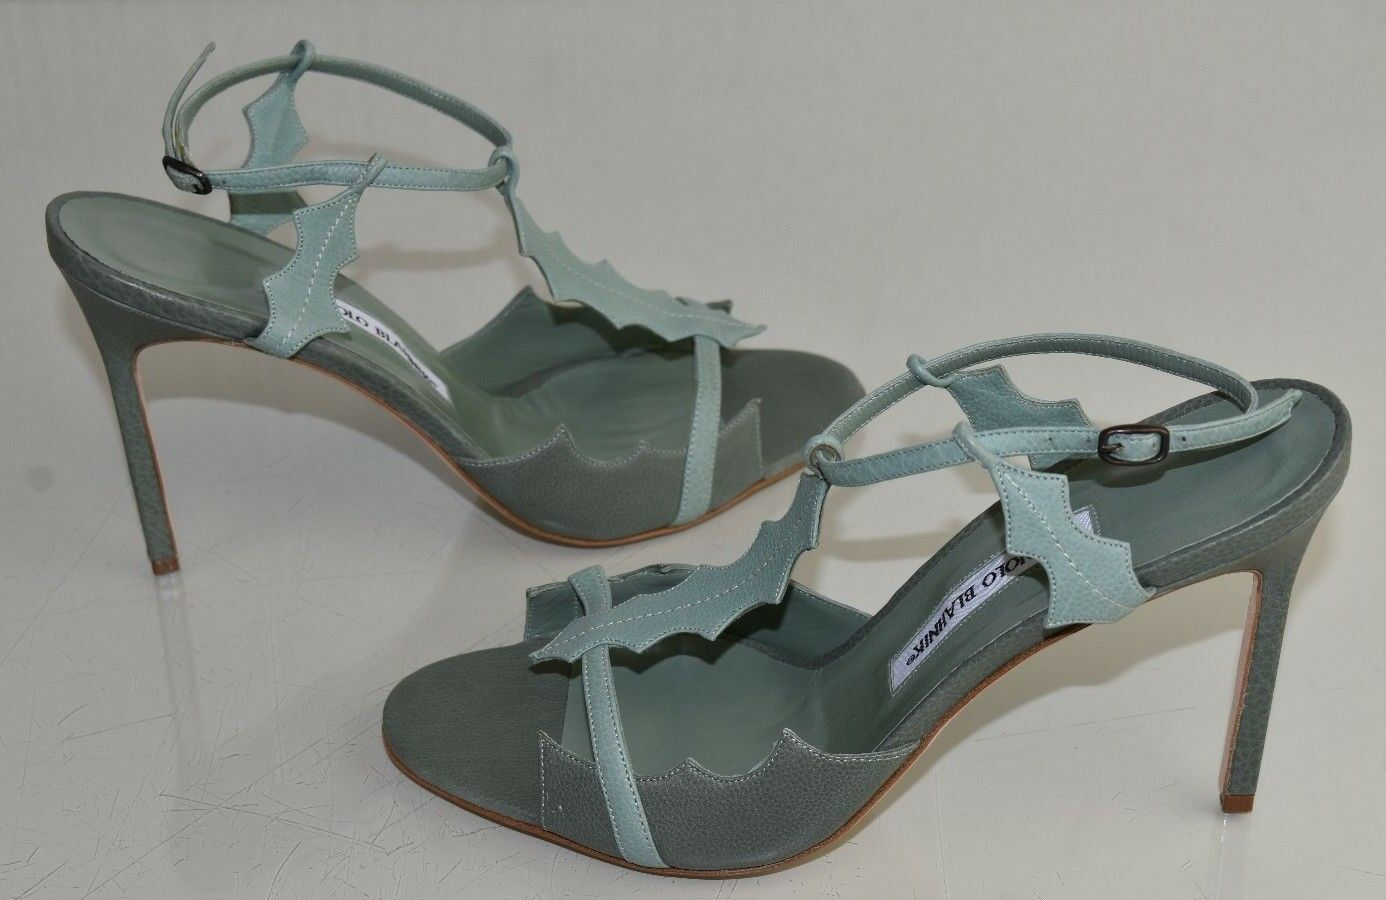 925 New Manolo Blahnik Sandals Green Ankle Strap Leather shoes BB Heels 41.5